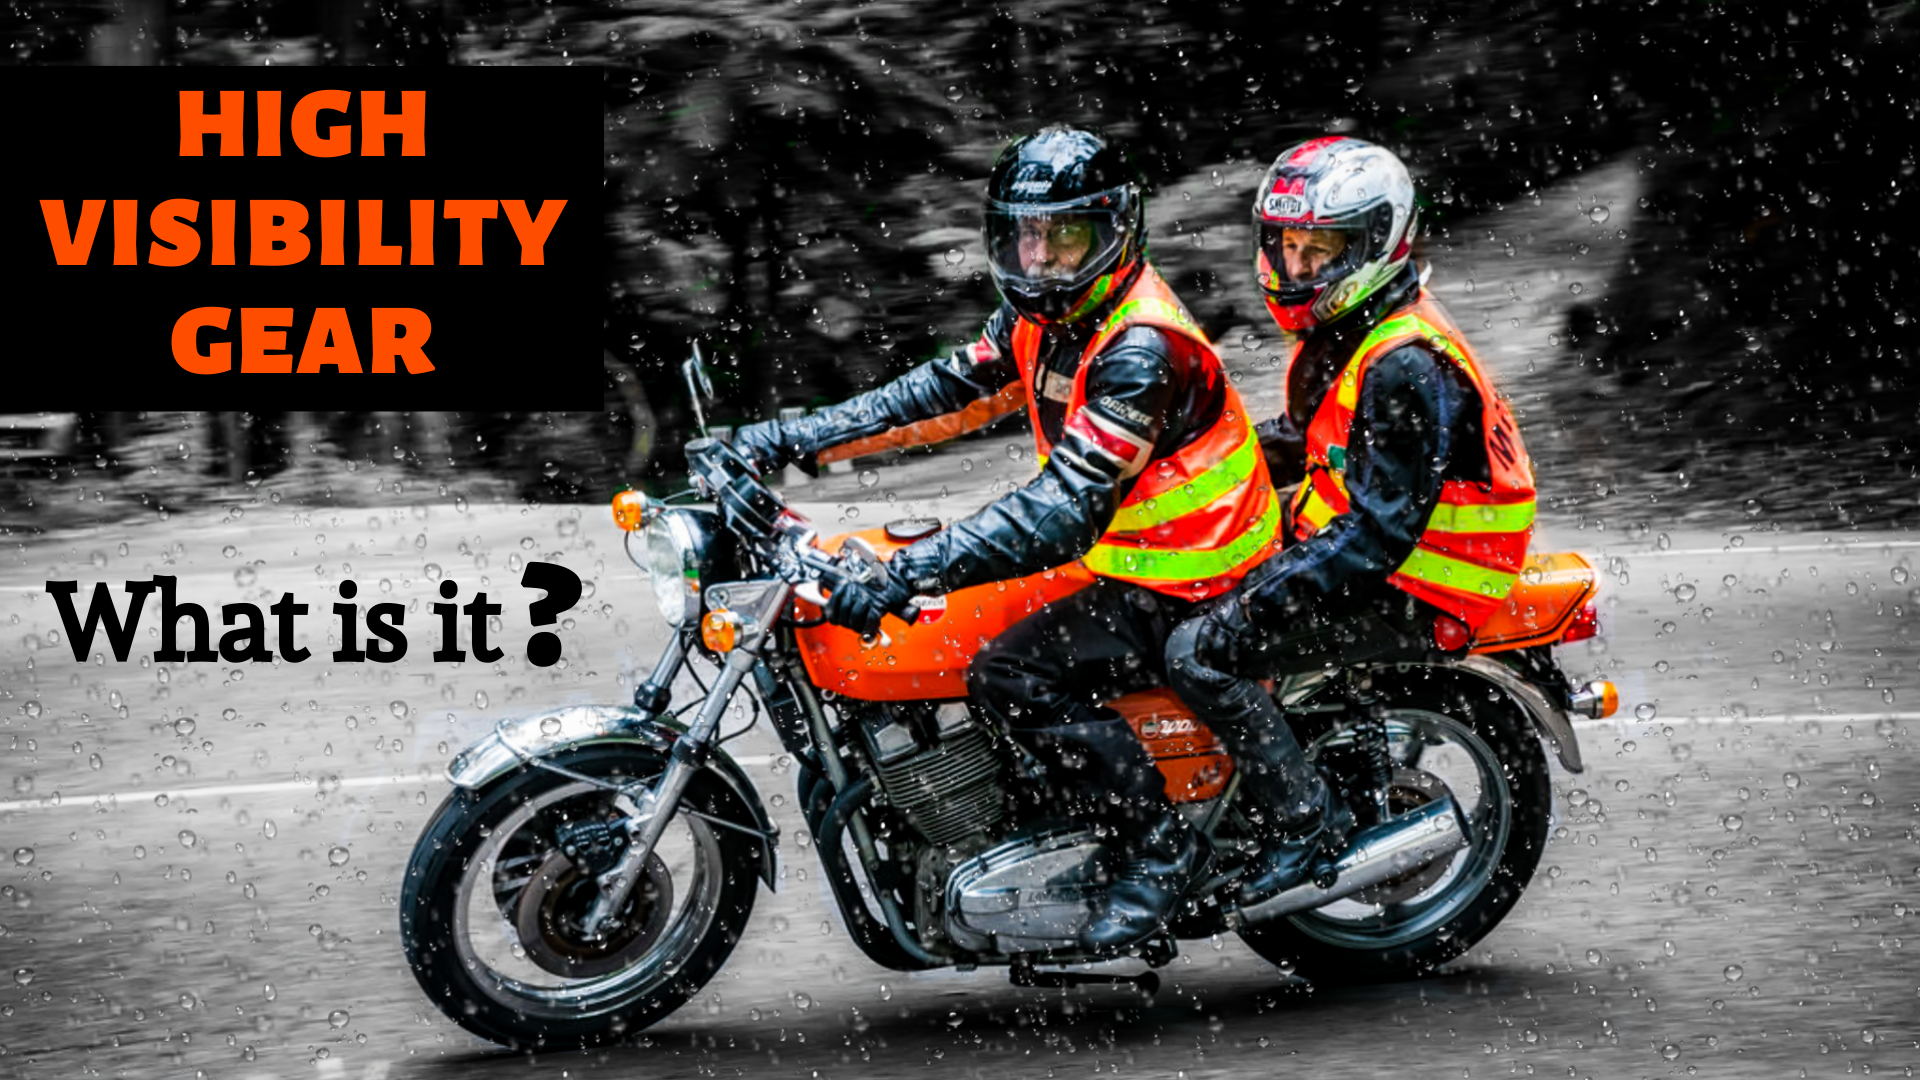 High visibility gear- what is it